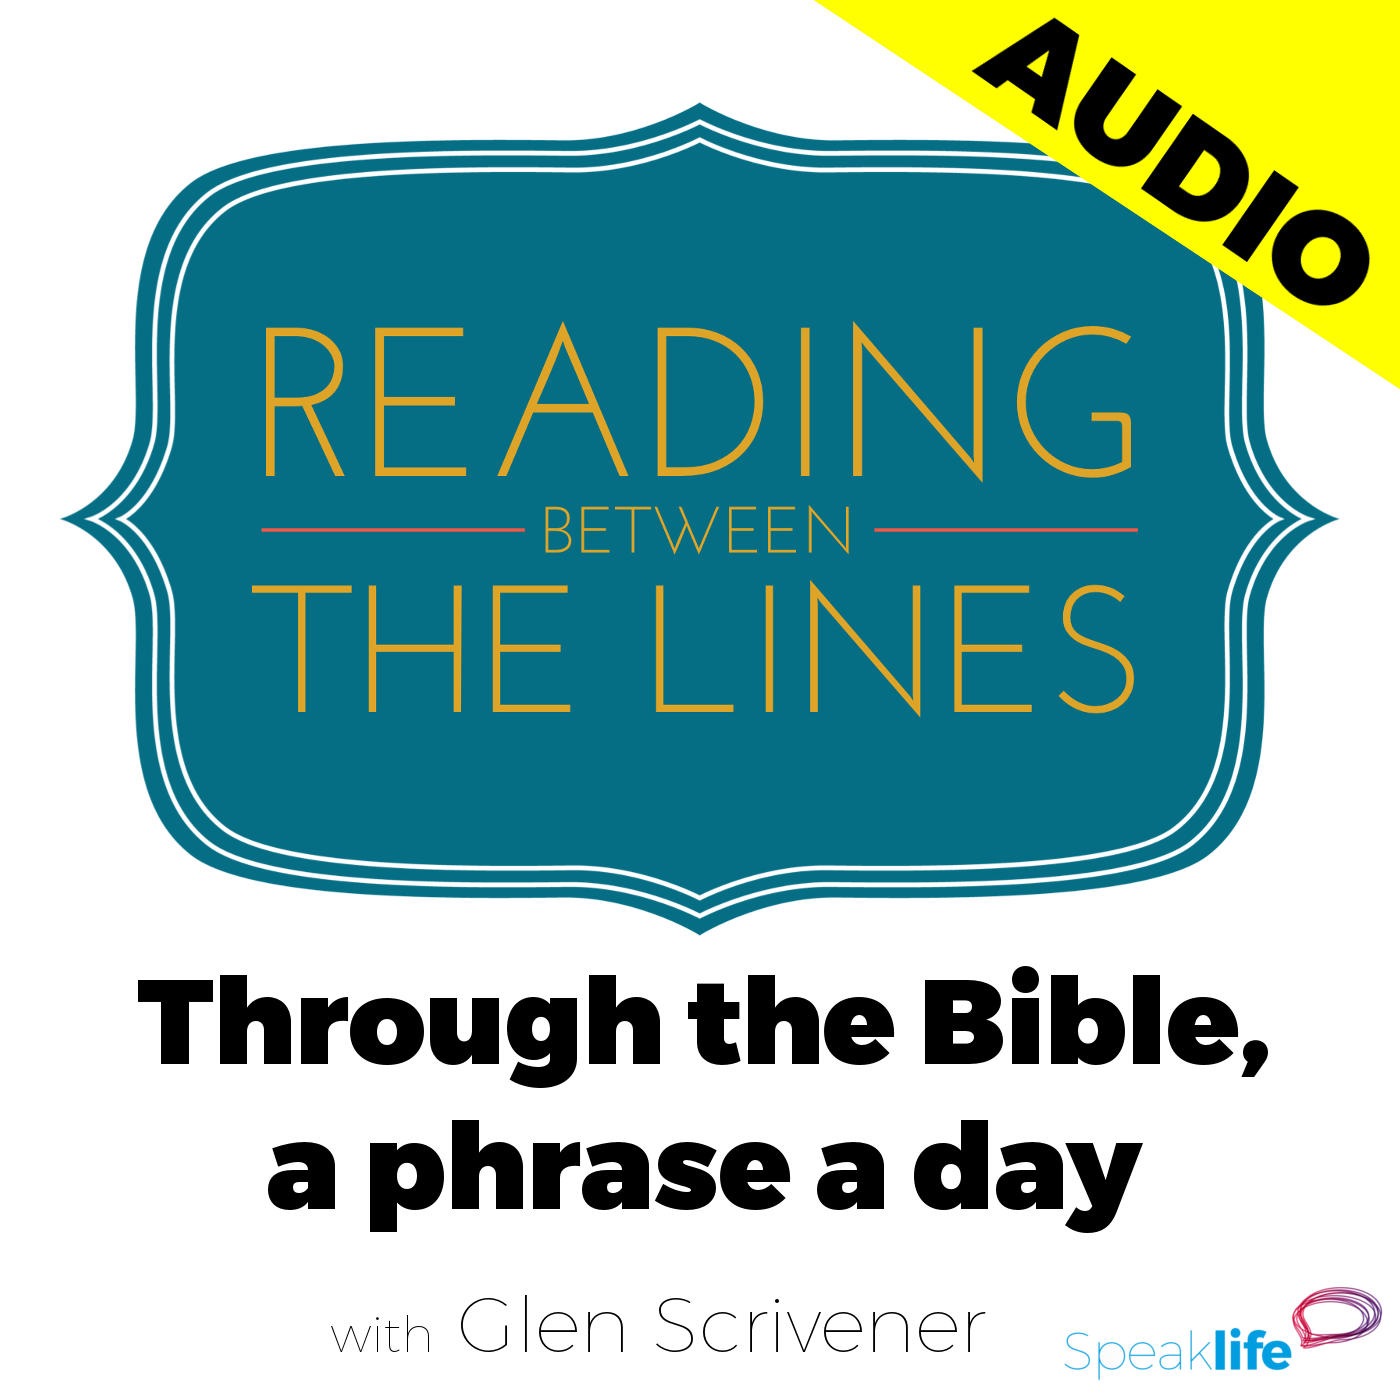 speak life reading between the lines through the bible a phrase